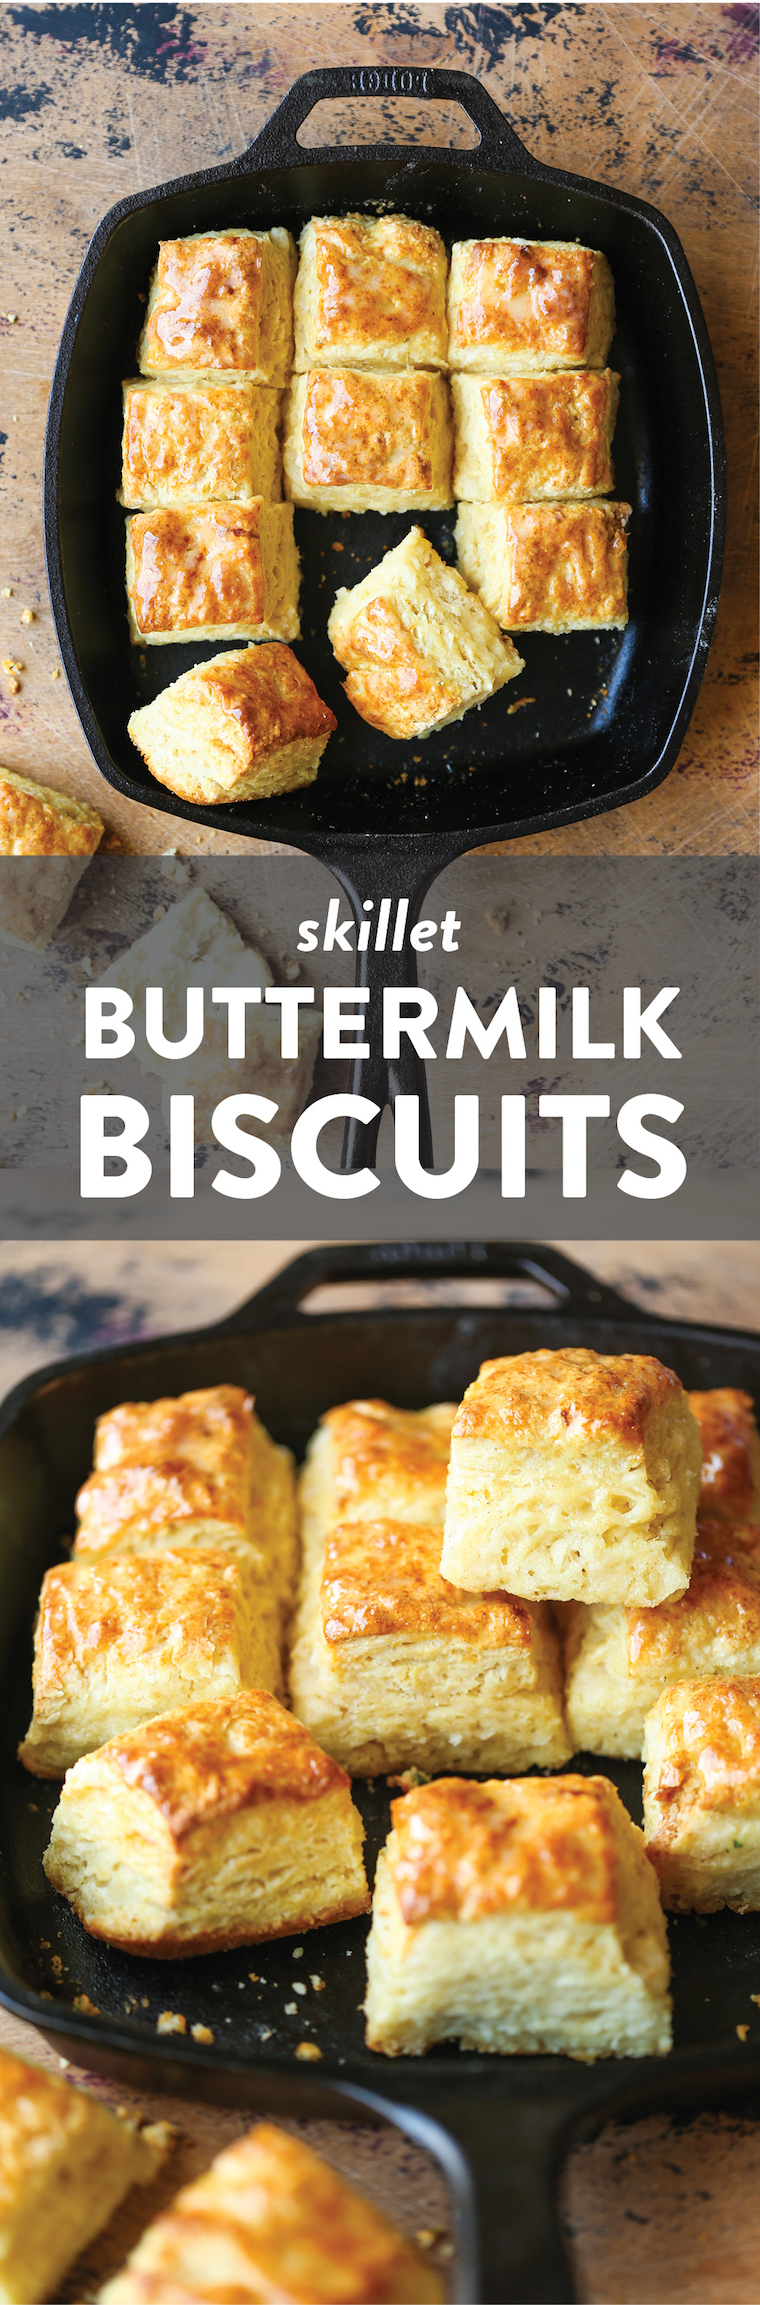 Skillet Buttermilk Biscuits - The most flaky, mile-high, buttery biscuits ever! Requires only 6 ingredients and baked in a skillet in under 45 minutes!